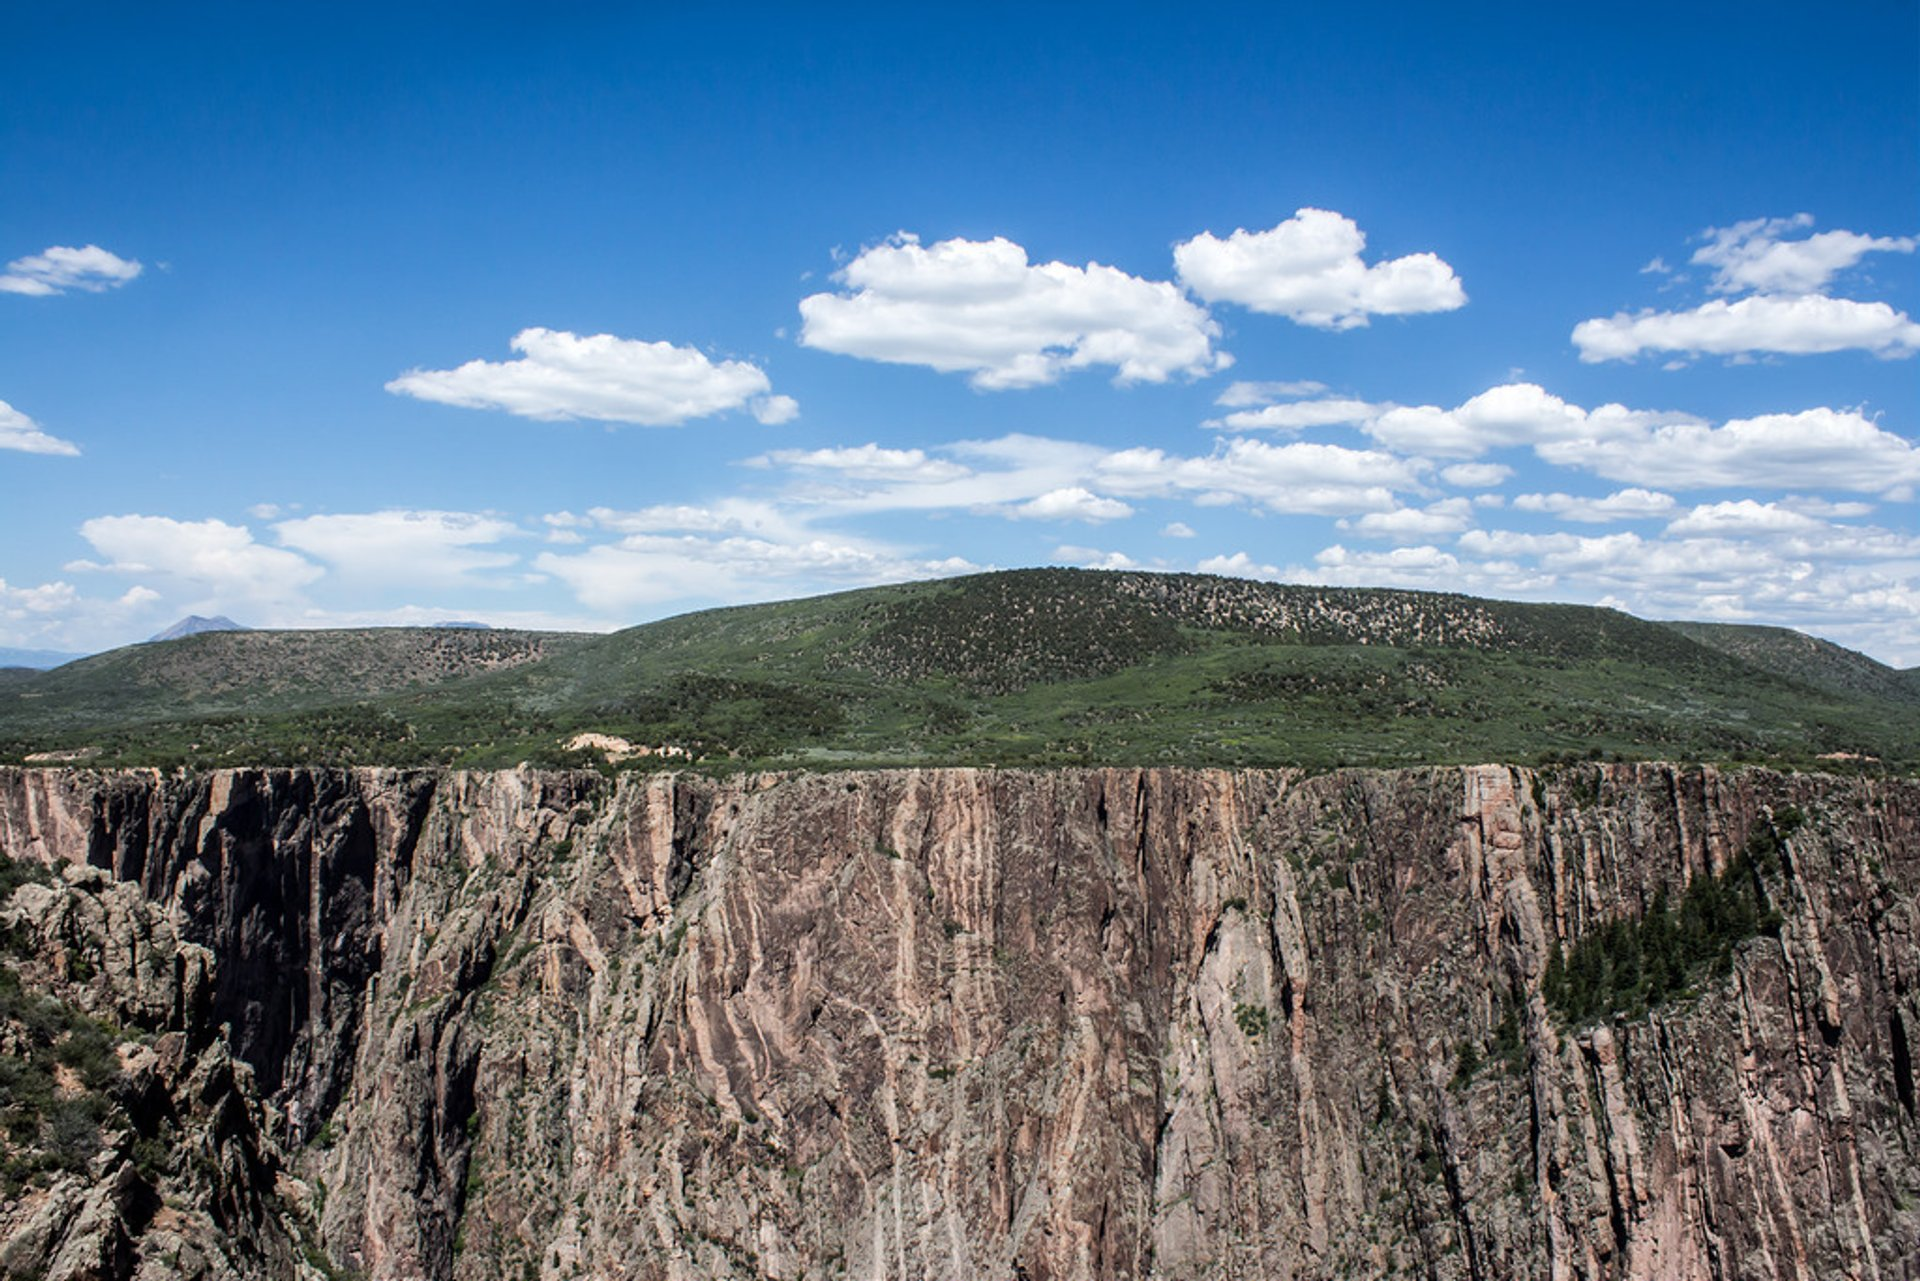 Black Canyon of the Gunnison National Park in Colorado - Best Season 2020